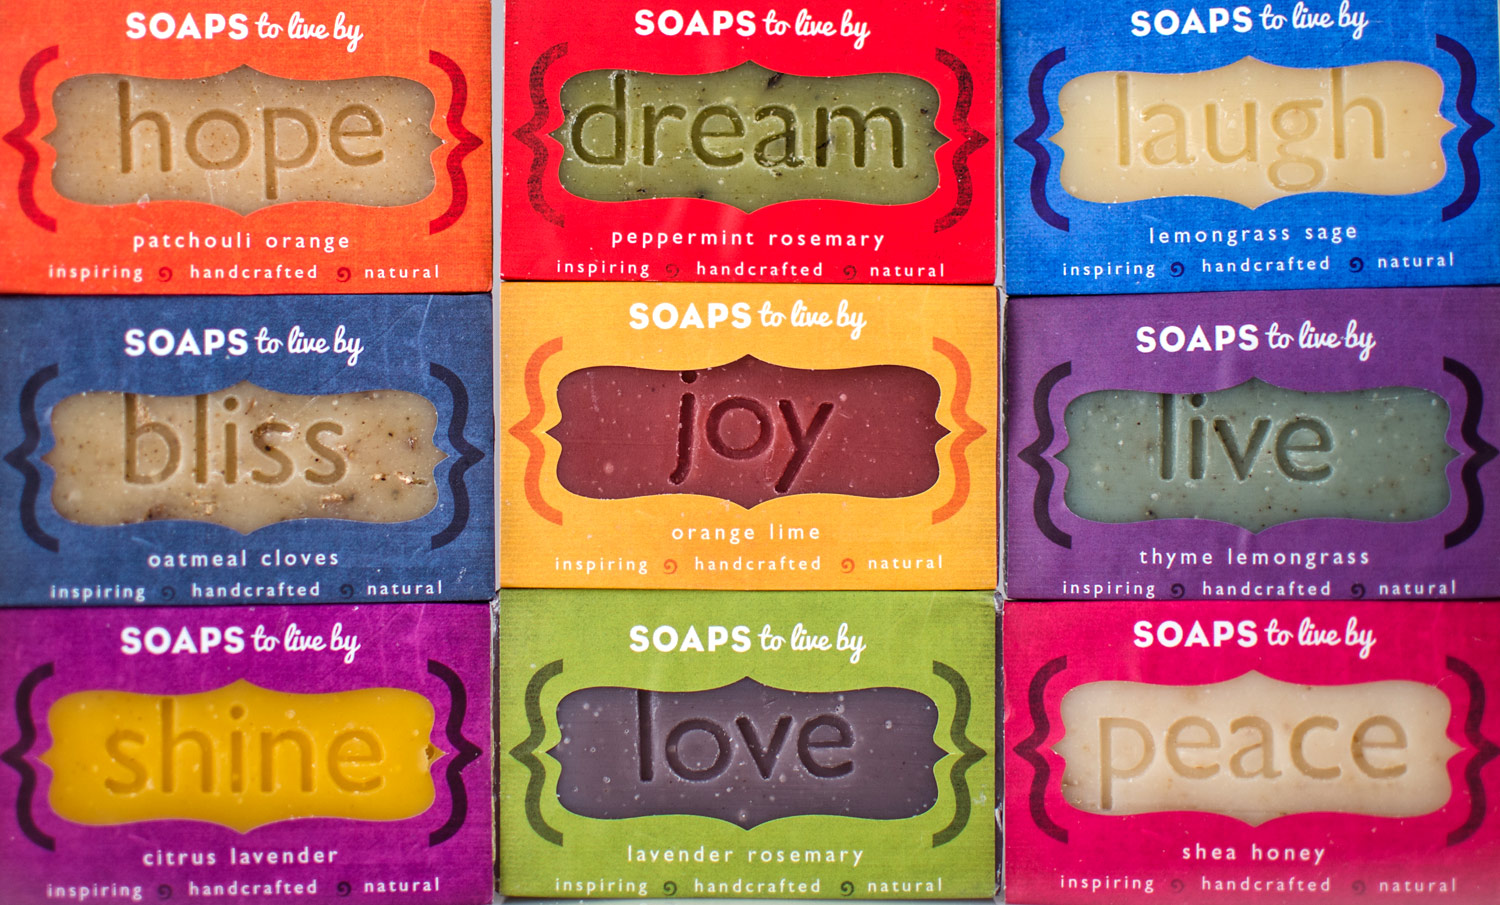 Soaps to Live By